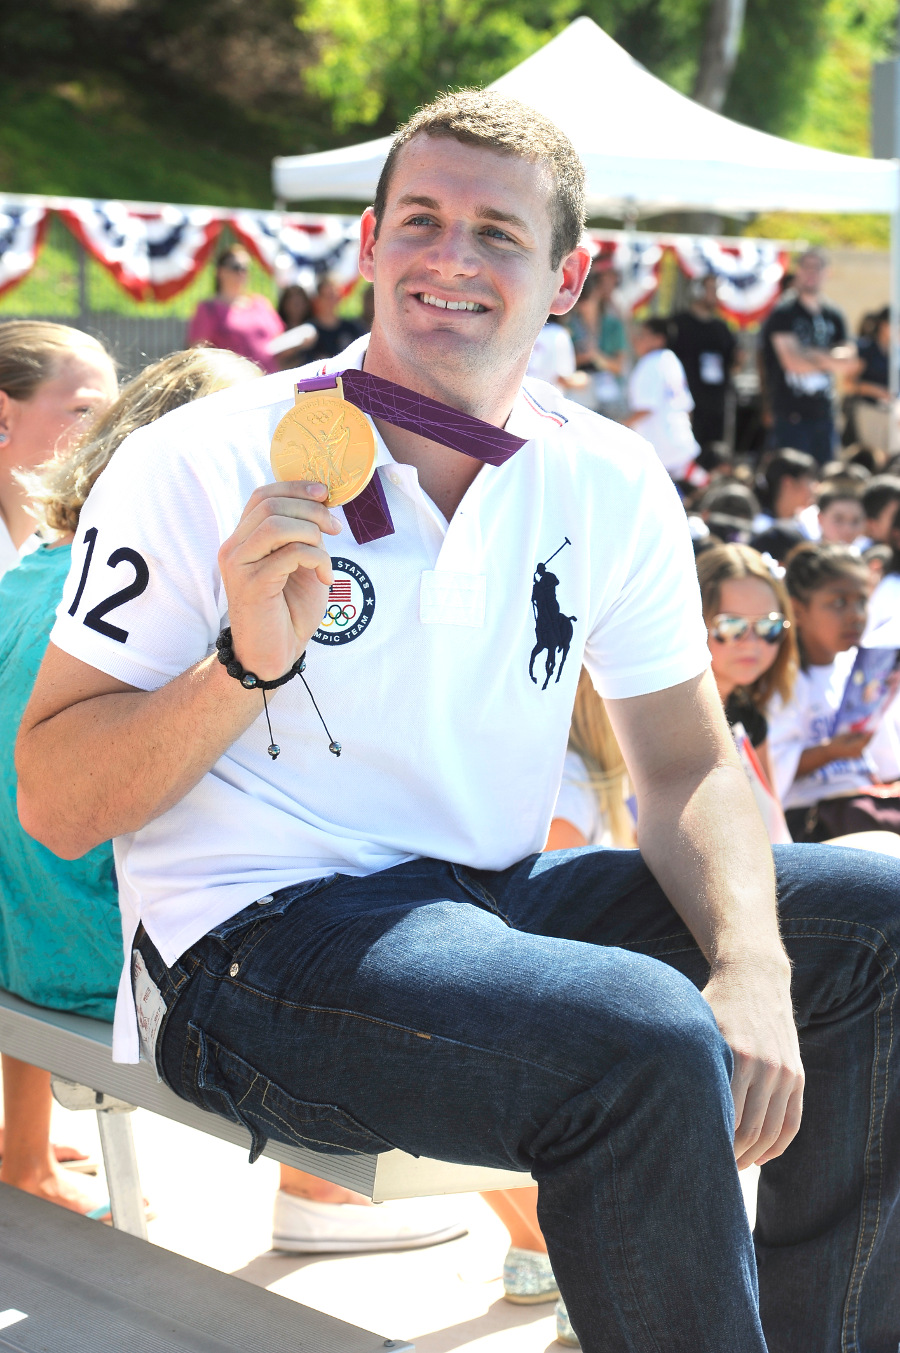 Olympic Gold Medalist Tyler Clary London holds up his medal.